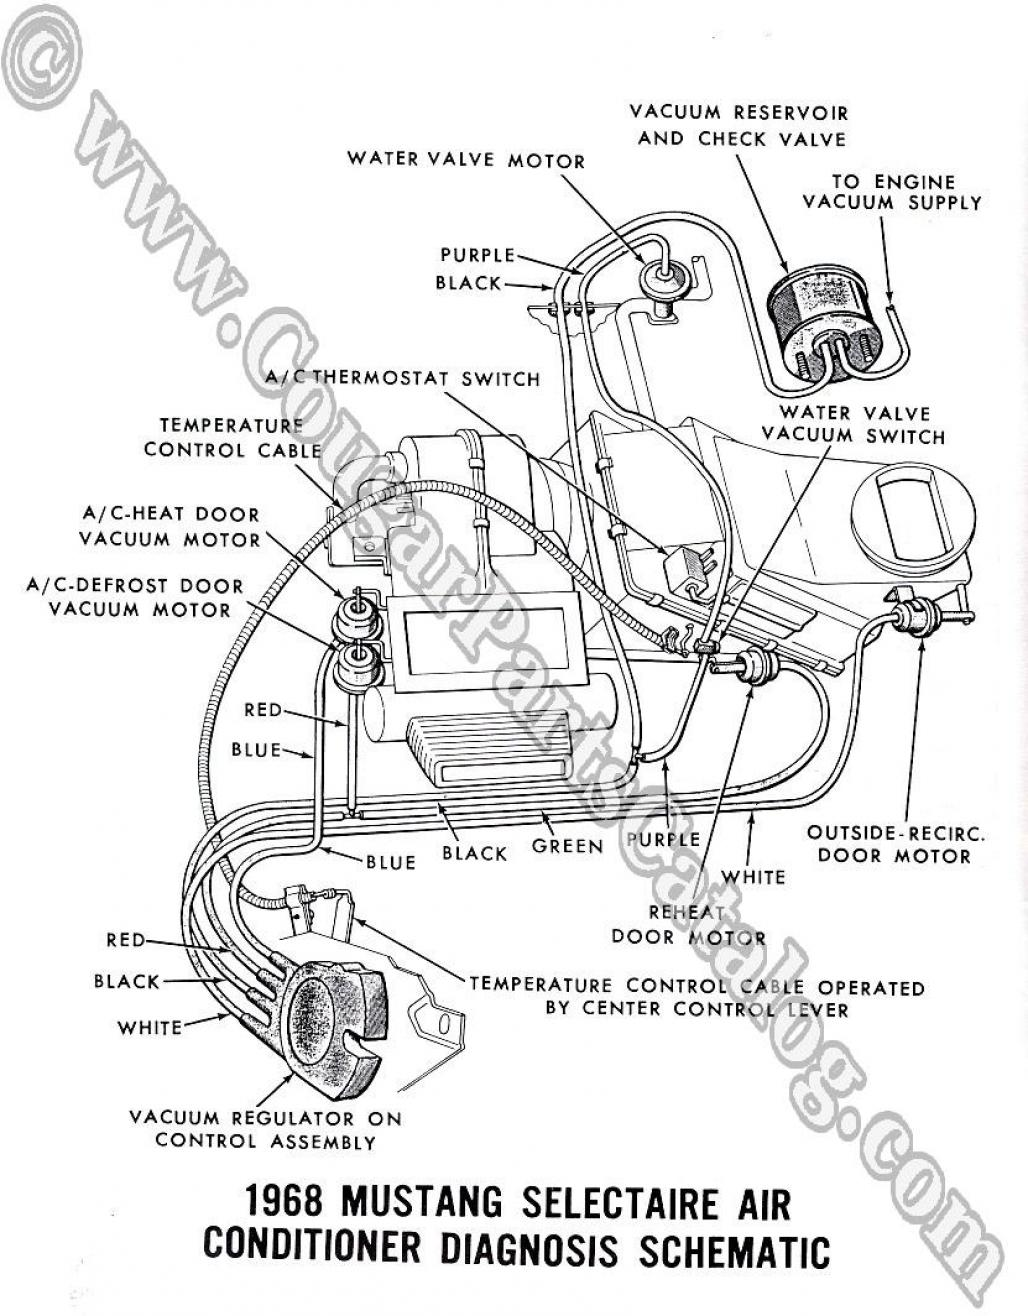 1000084 68Schematic wonderful 1970 ford alternator wiring diagram ideas electrical